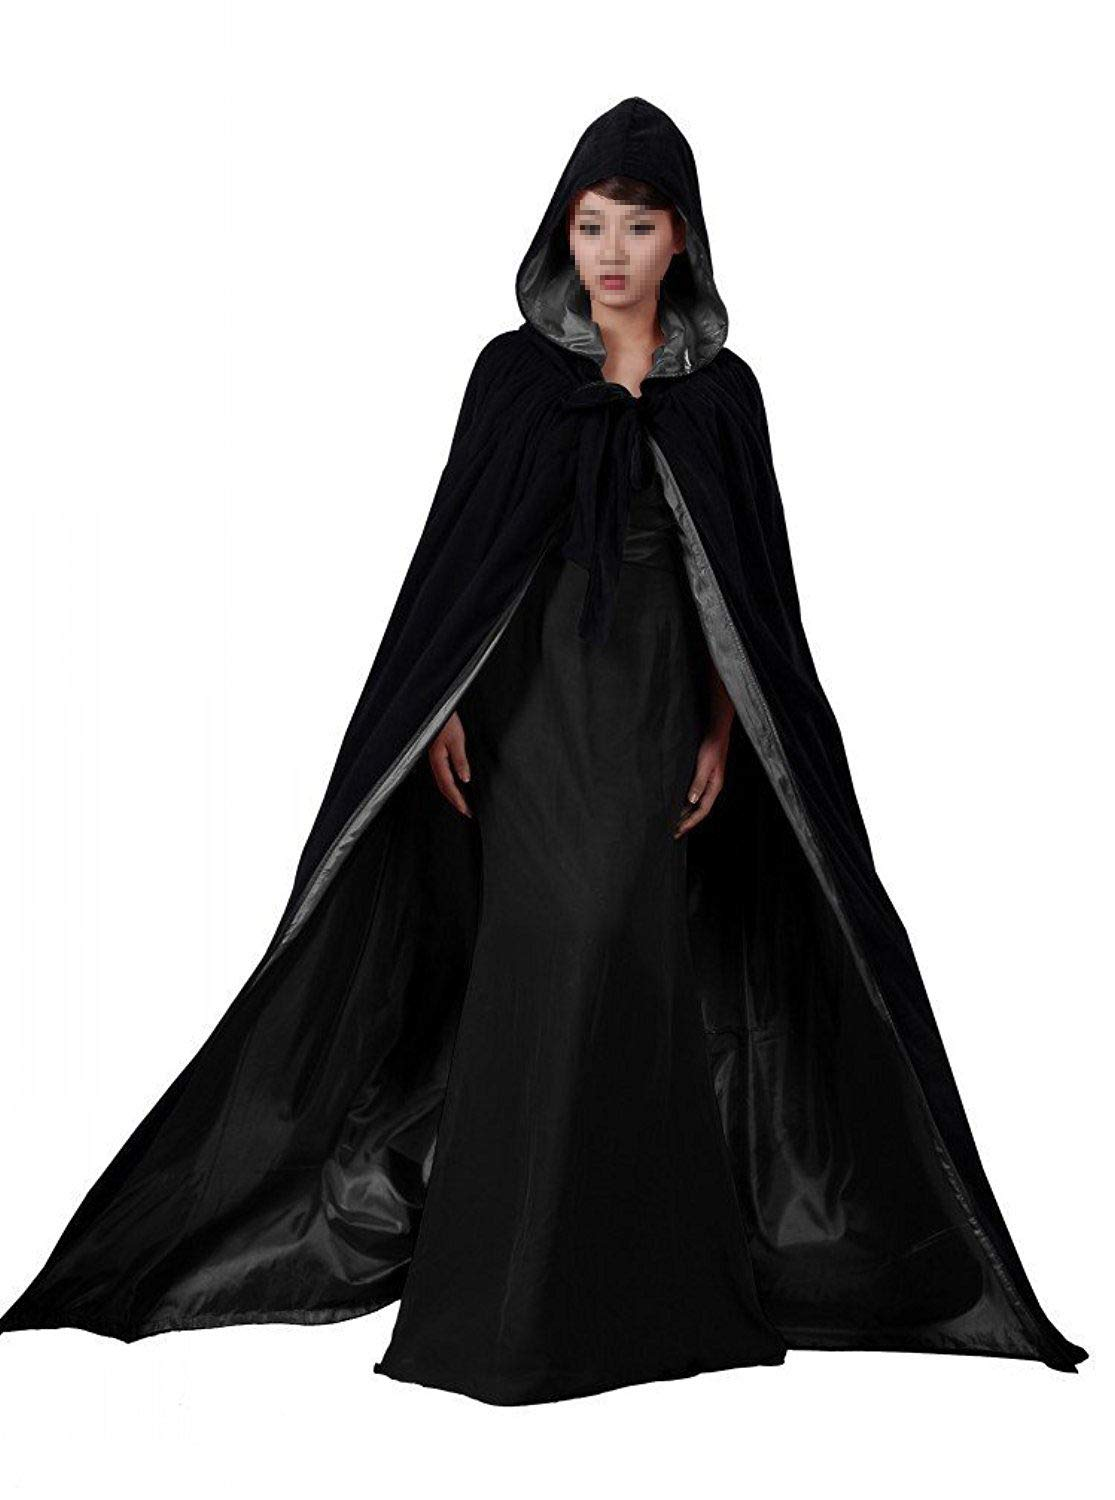 Special Bridal Long Capes Unisex Holloween Black Velvet Cape Adult Halloween Christmas Cosplay Costume Cloaks